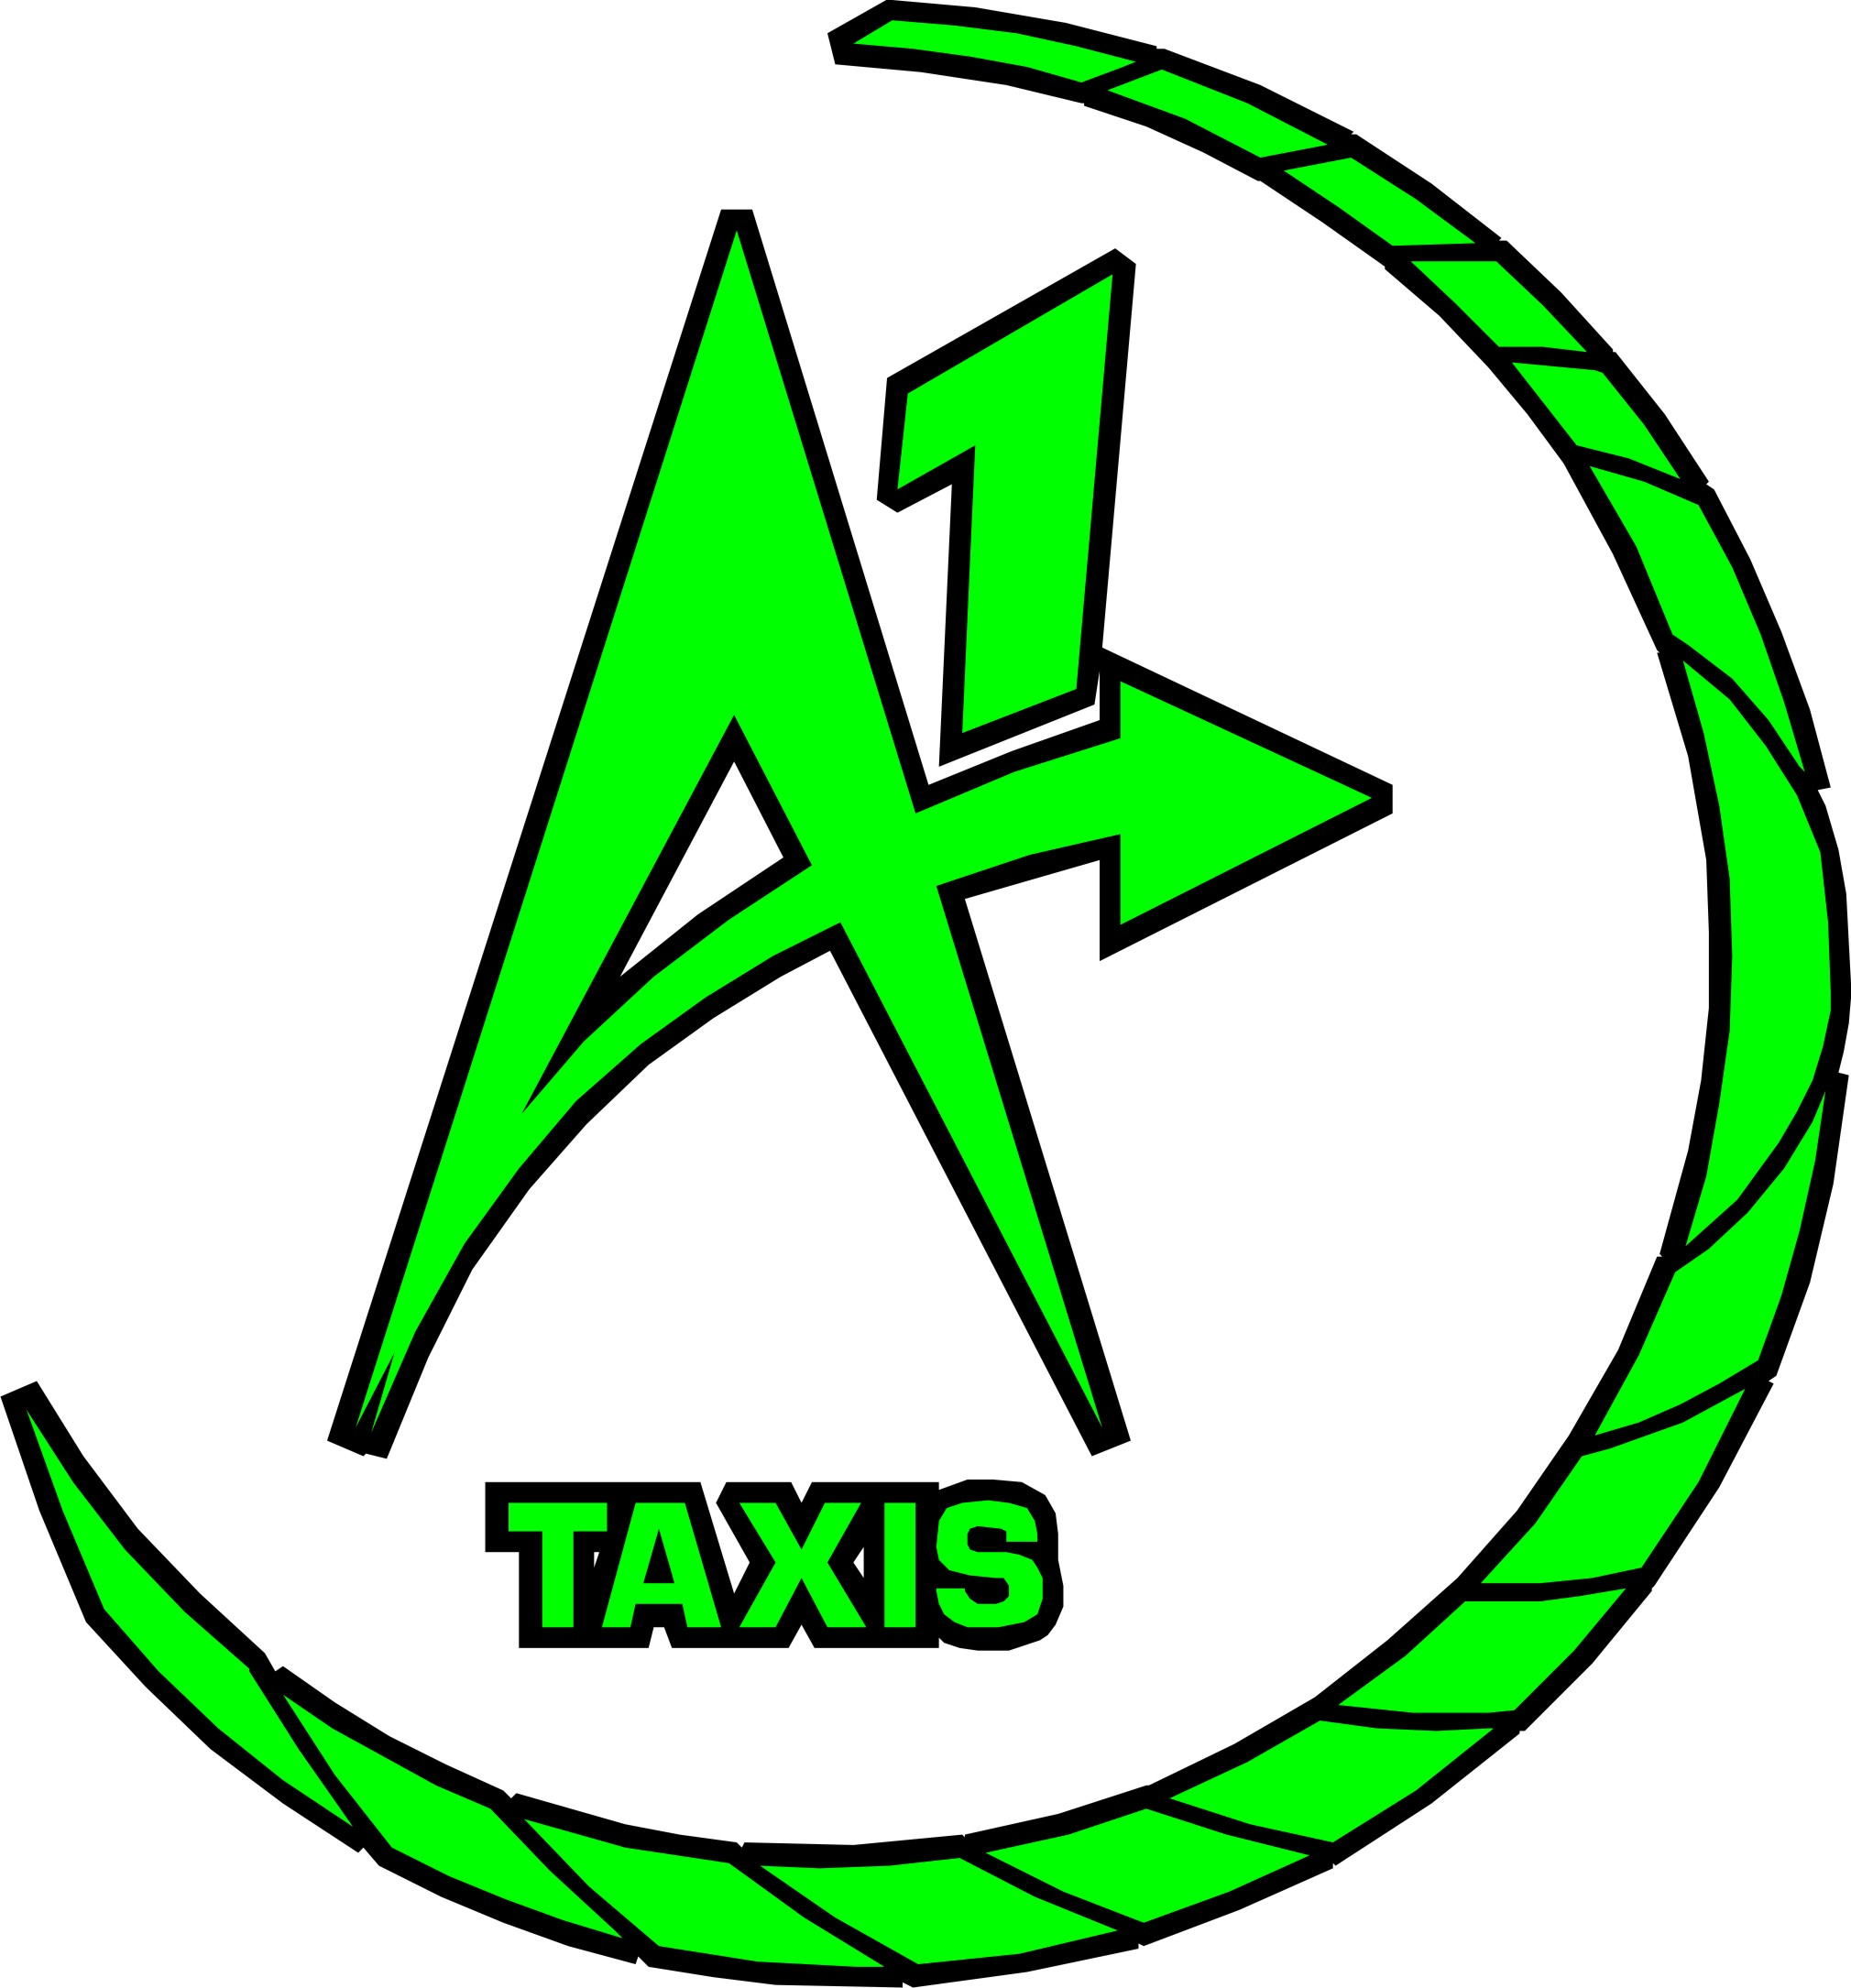 A1 taxis eastleigh providing a service covering chandlers ford, boyatt wood and southampton airport parkway and all the cruise terminals as well as areas that surround eastleigh and hampshire